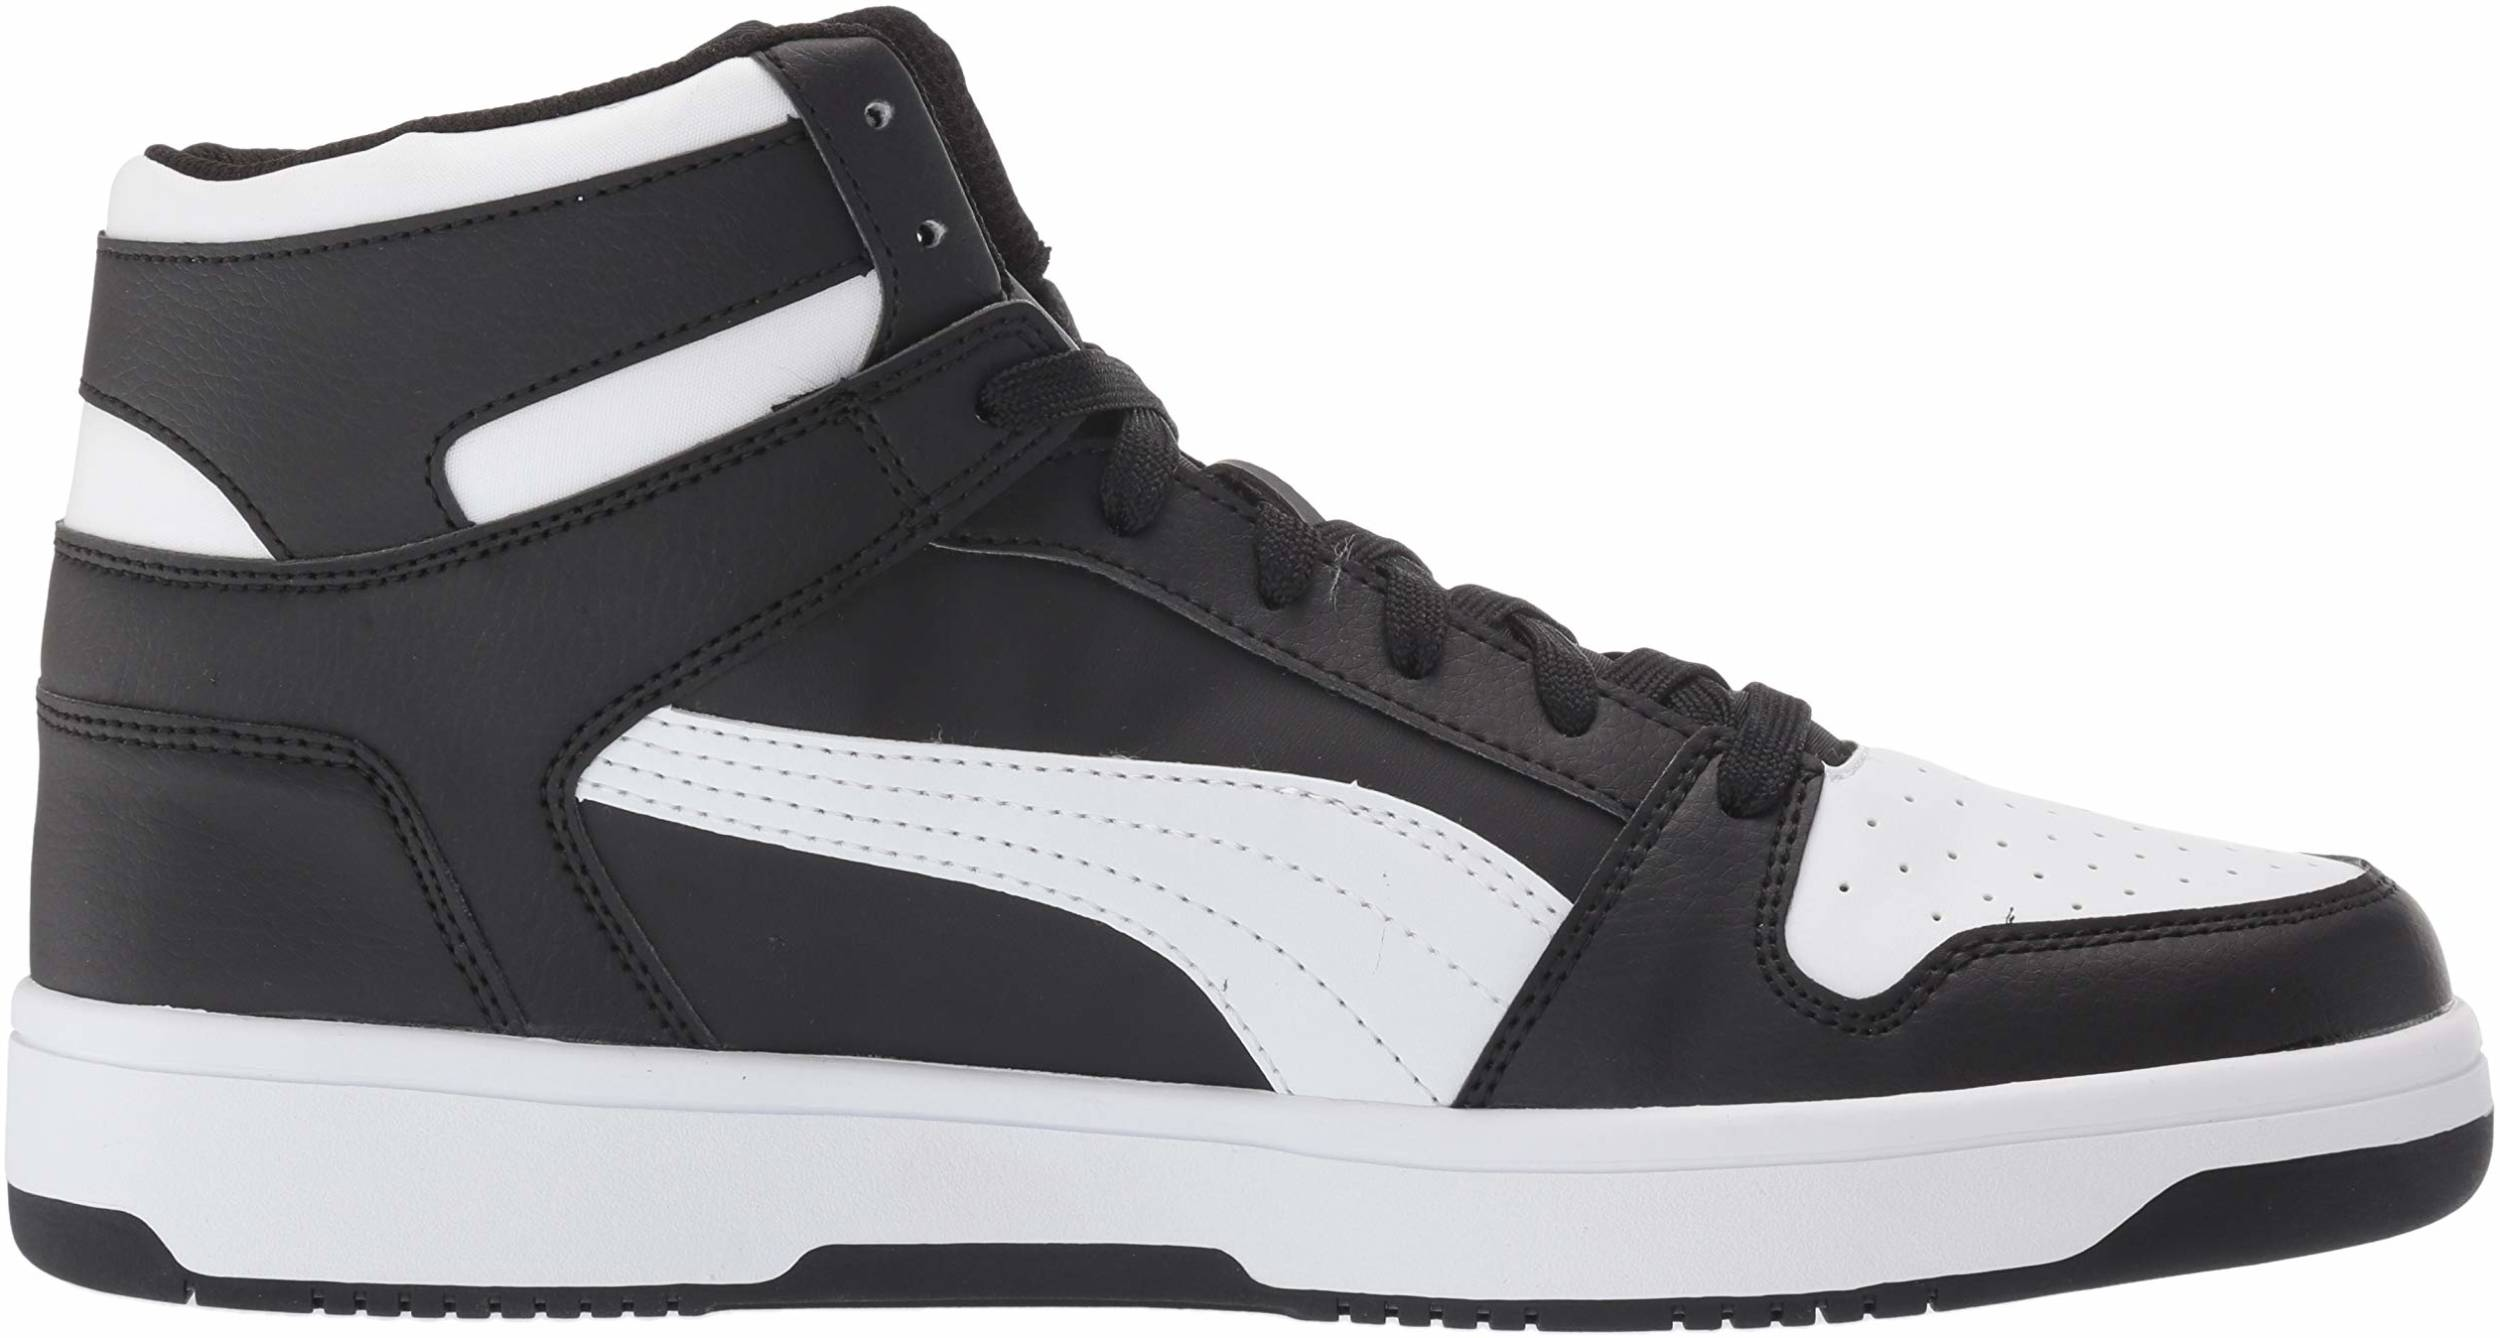 Puma Rebound LayUp sneakers in 8 colors (only $49) | RunRepeat